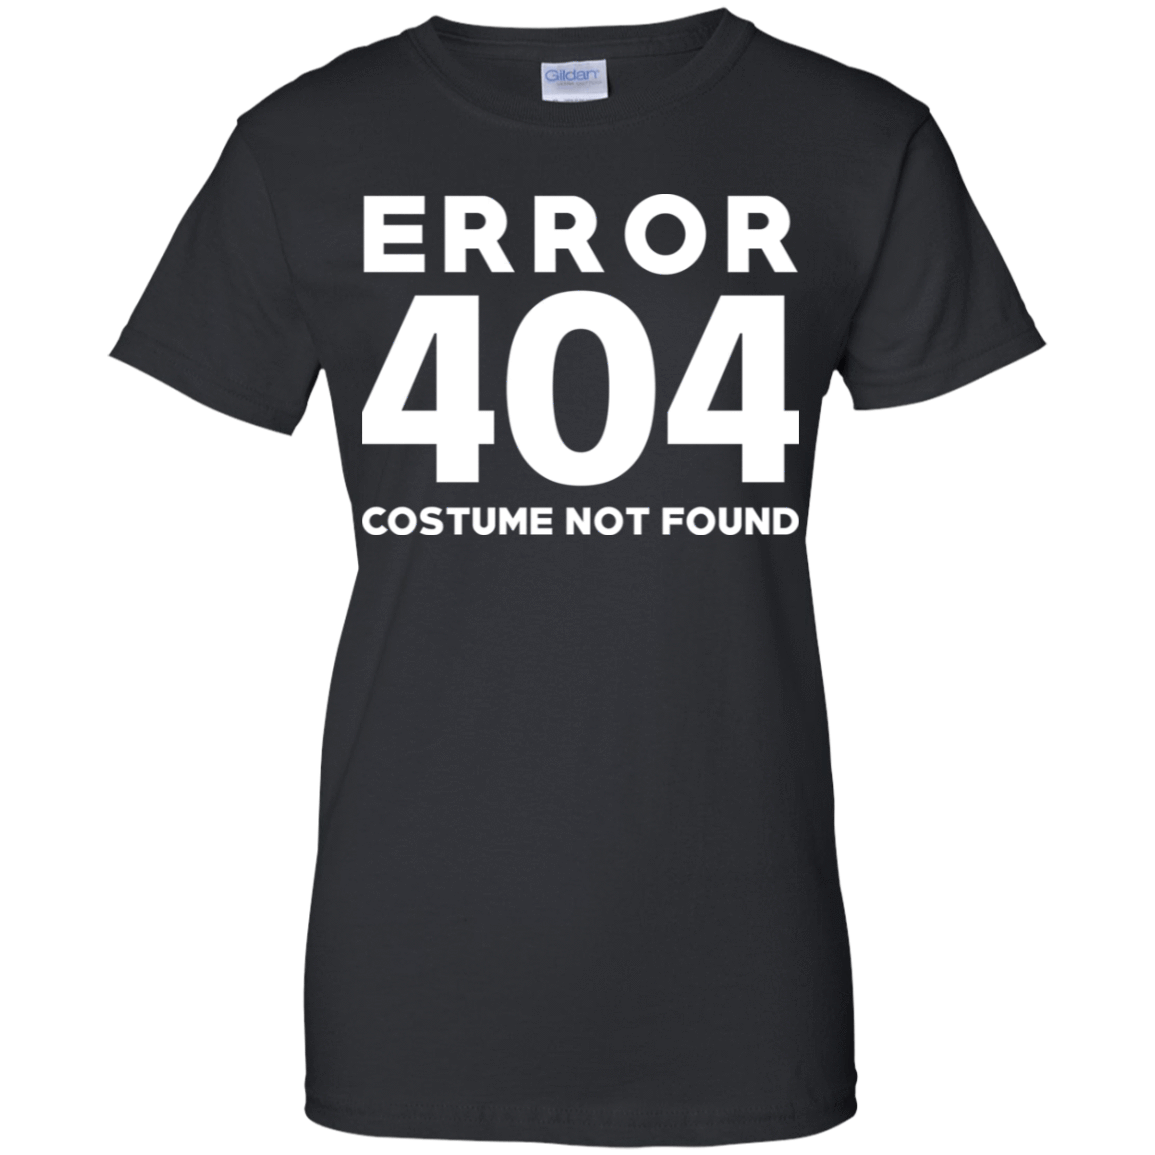 Error 404 Costume Not Found 939-9248-73513404-44695 - Tee Ript